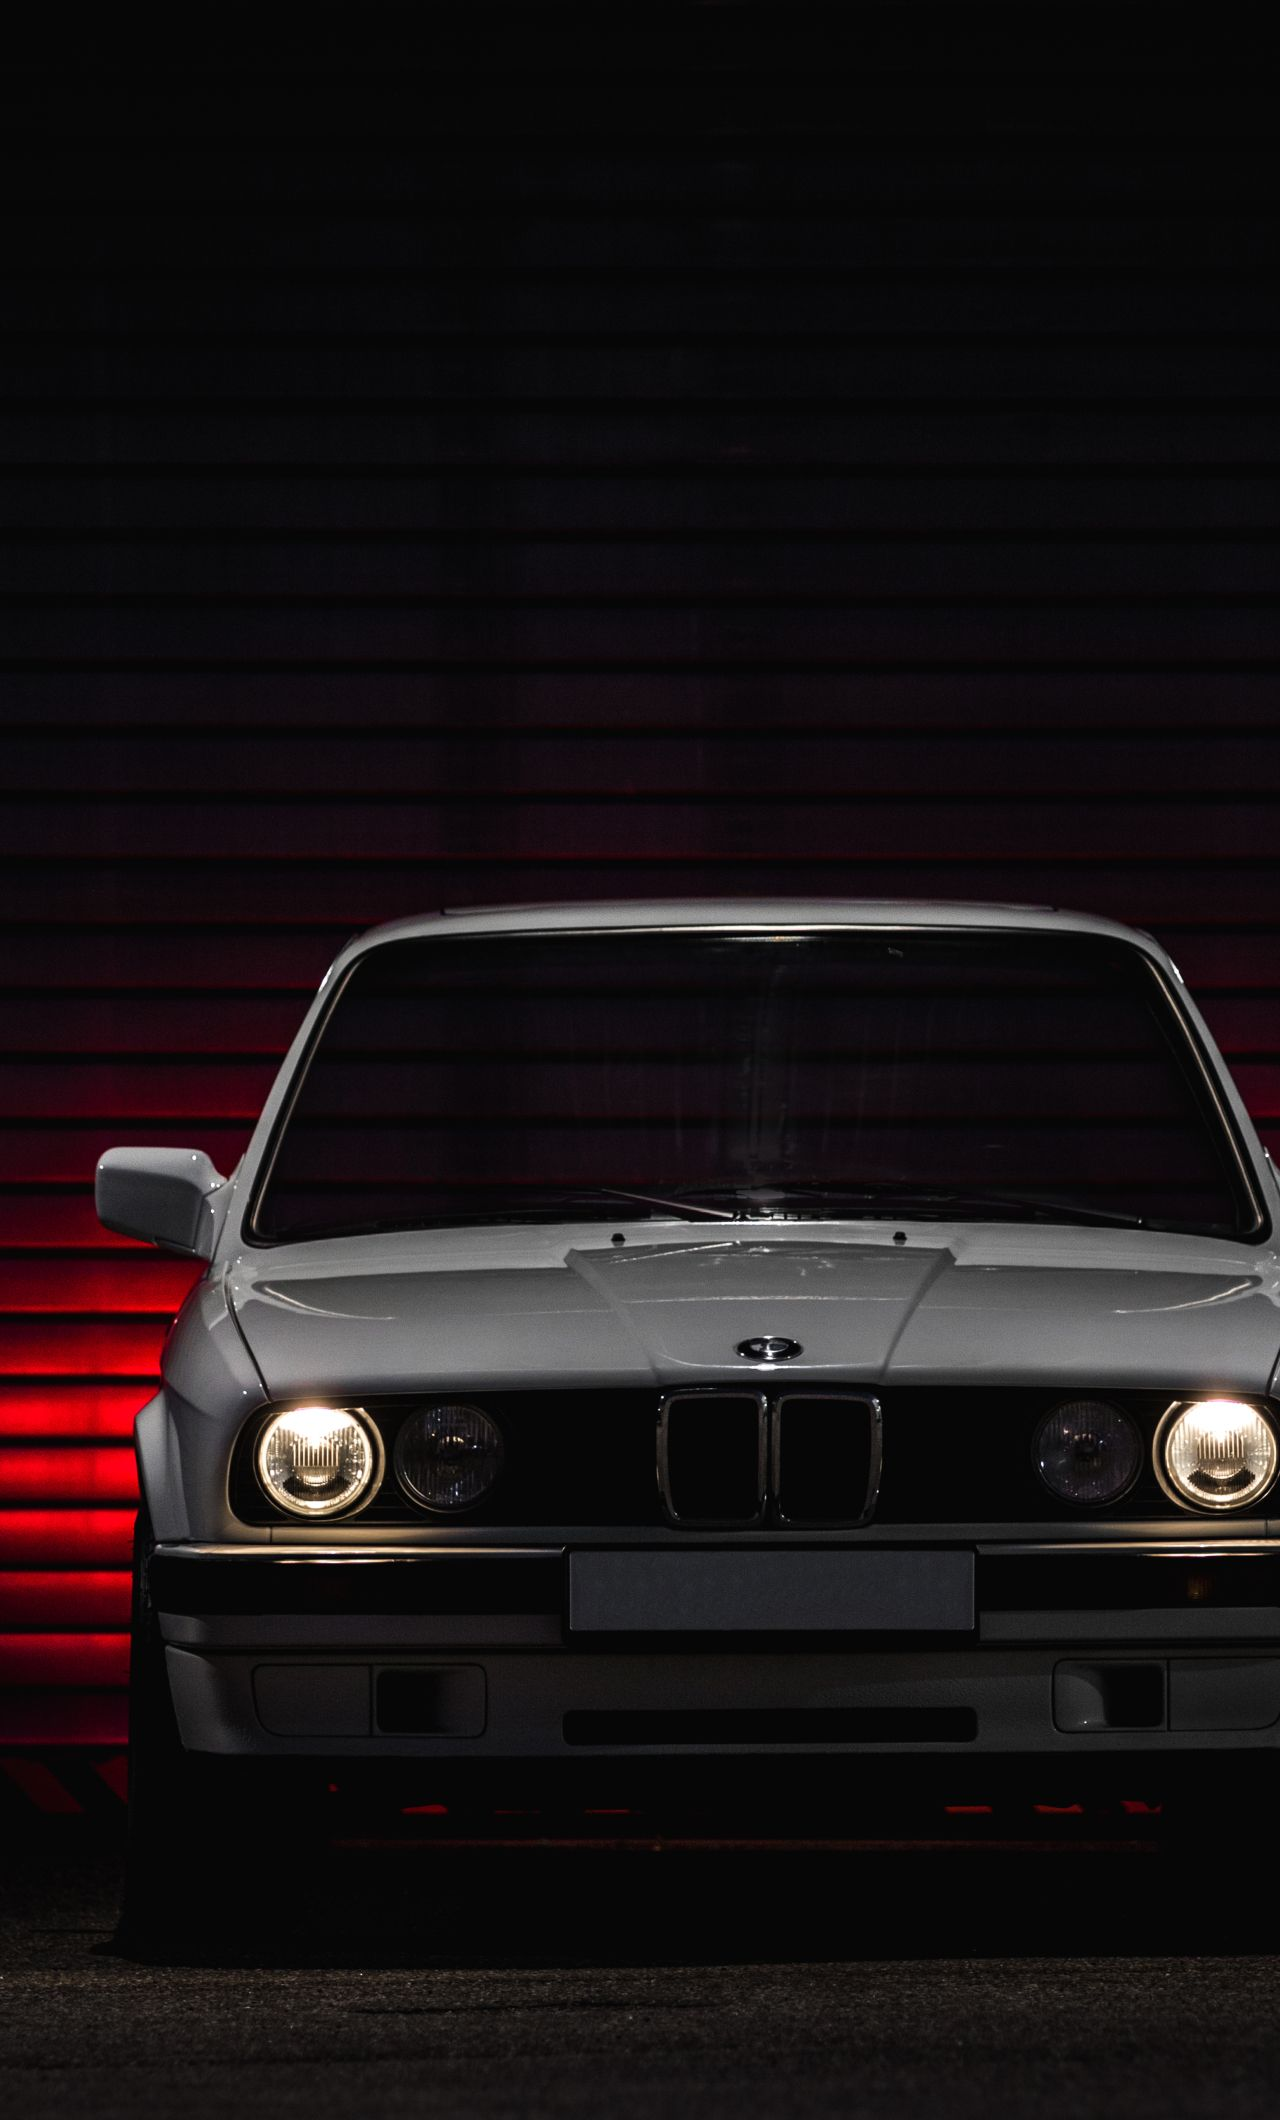 BMW E30 4k iPhone Wallpapers - Wallpaper Cave